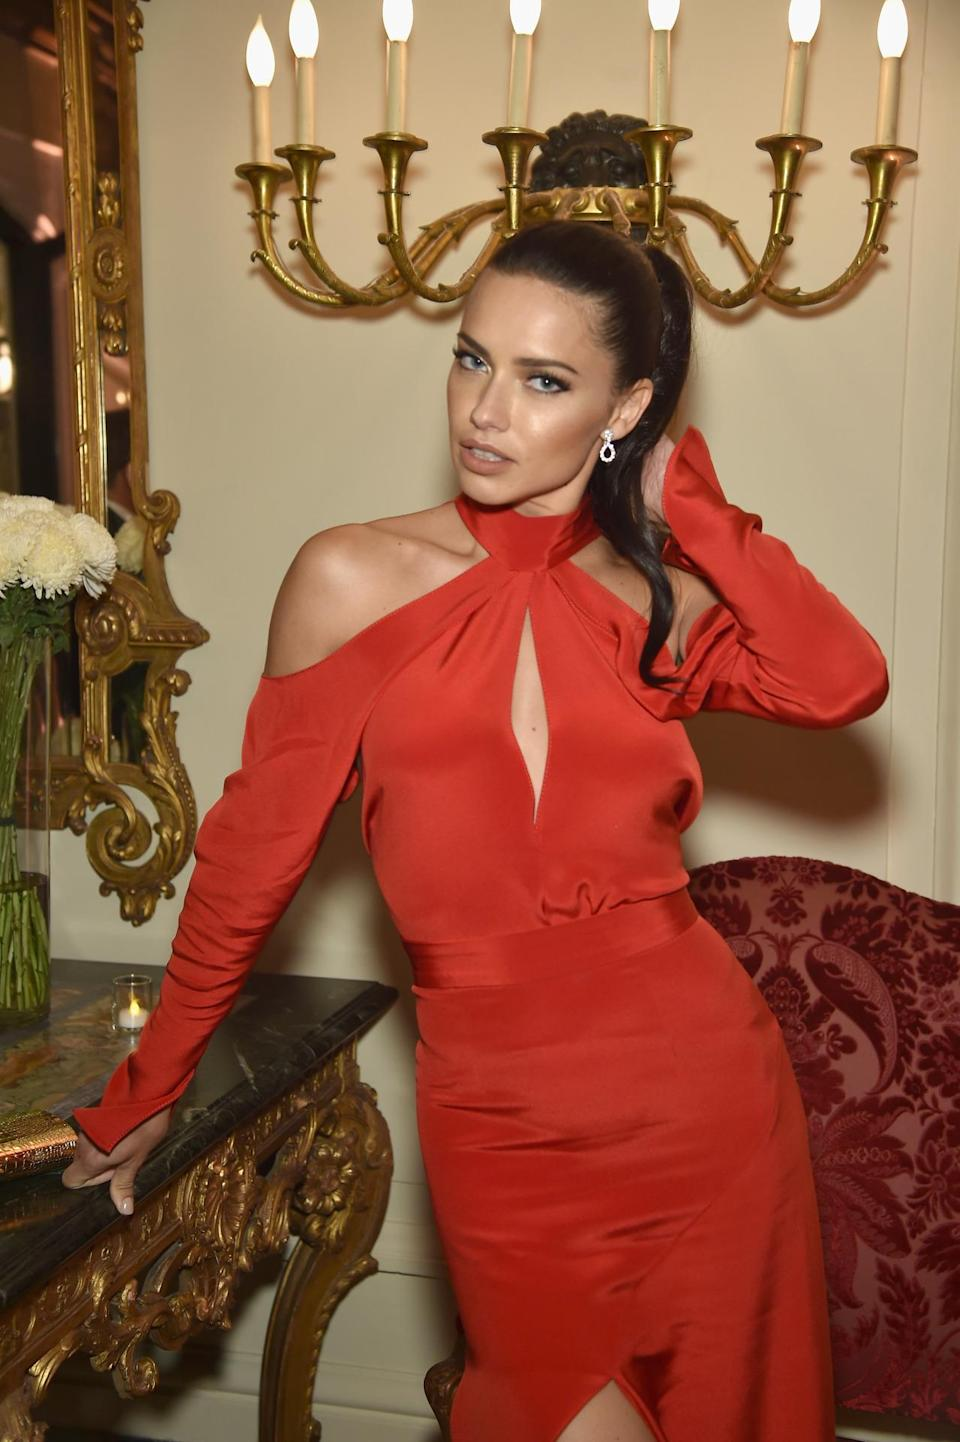 <p>Model Adriana Lima attends the Bloomberg & Vanity Fair cocktail reception following the White House Correspondents' Dinner, April 30. <i>(Photo: Dimitrios Kambouris/VF16/WireImage)</i></p>